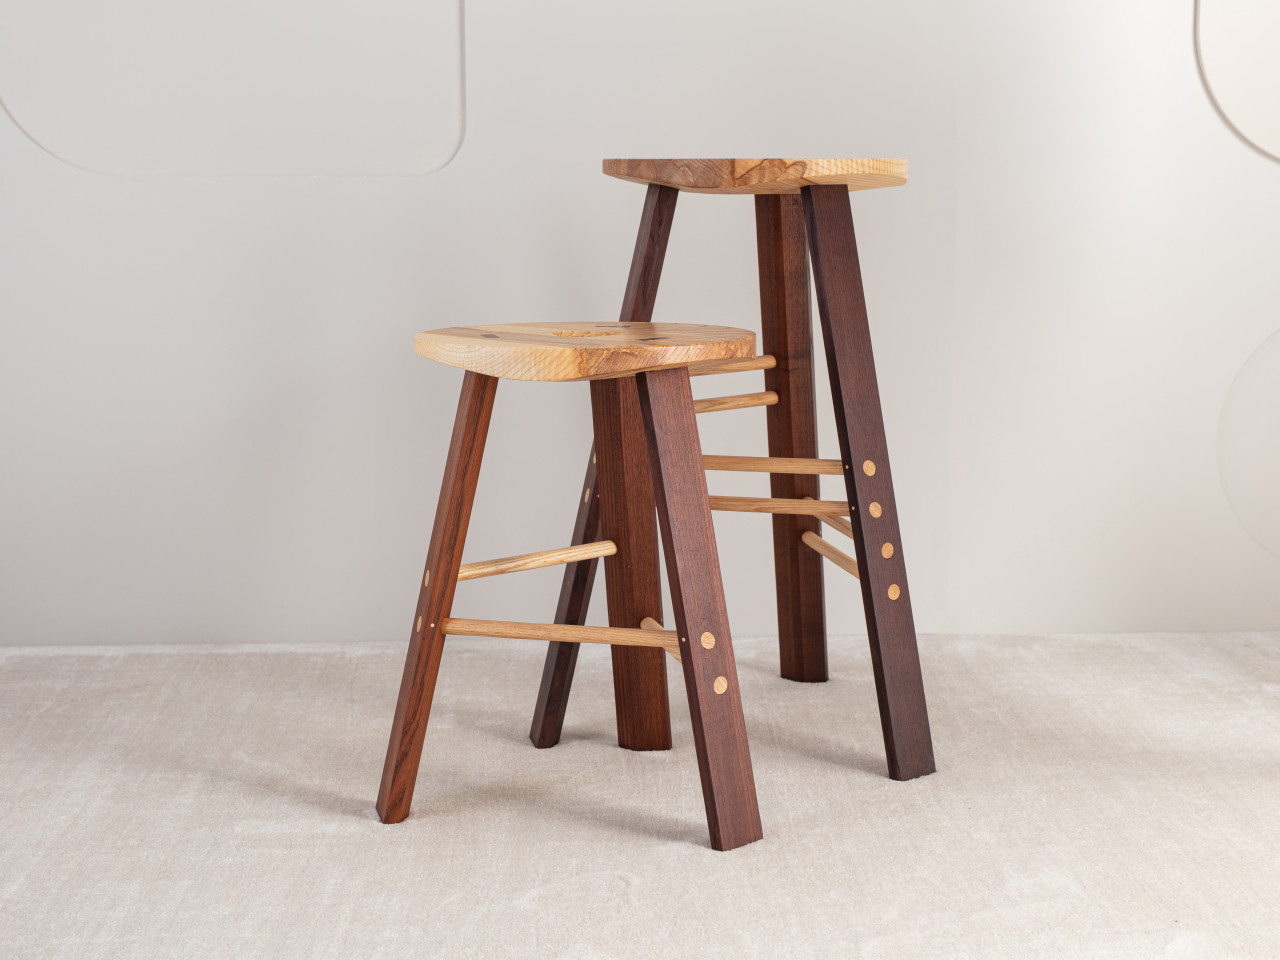 two stool chairs